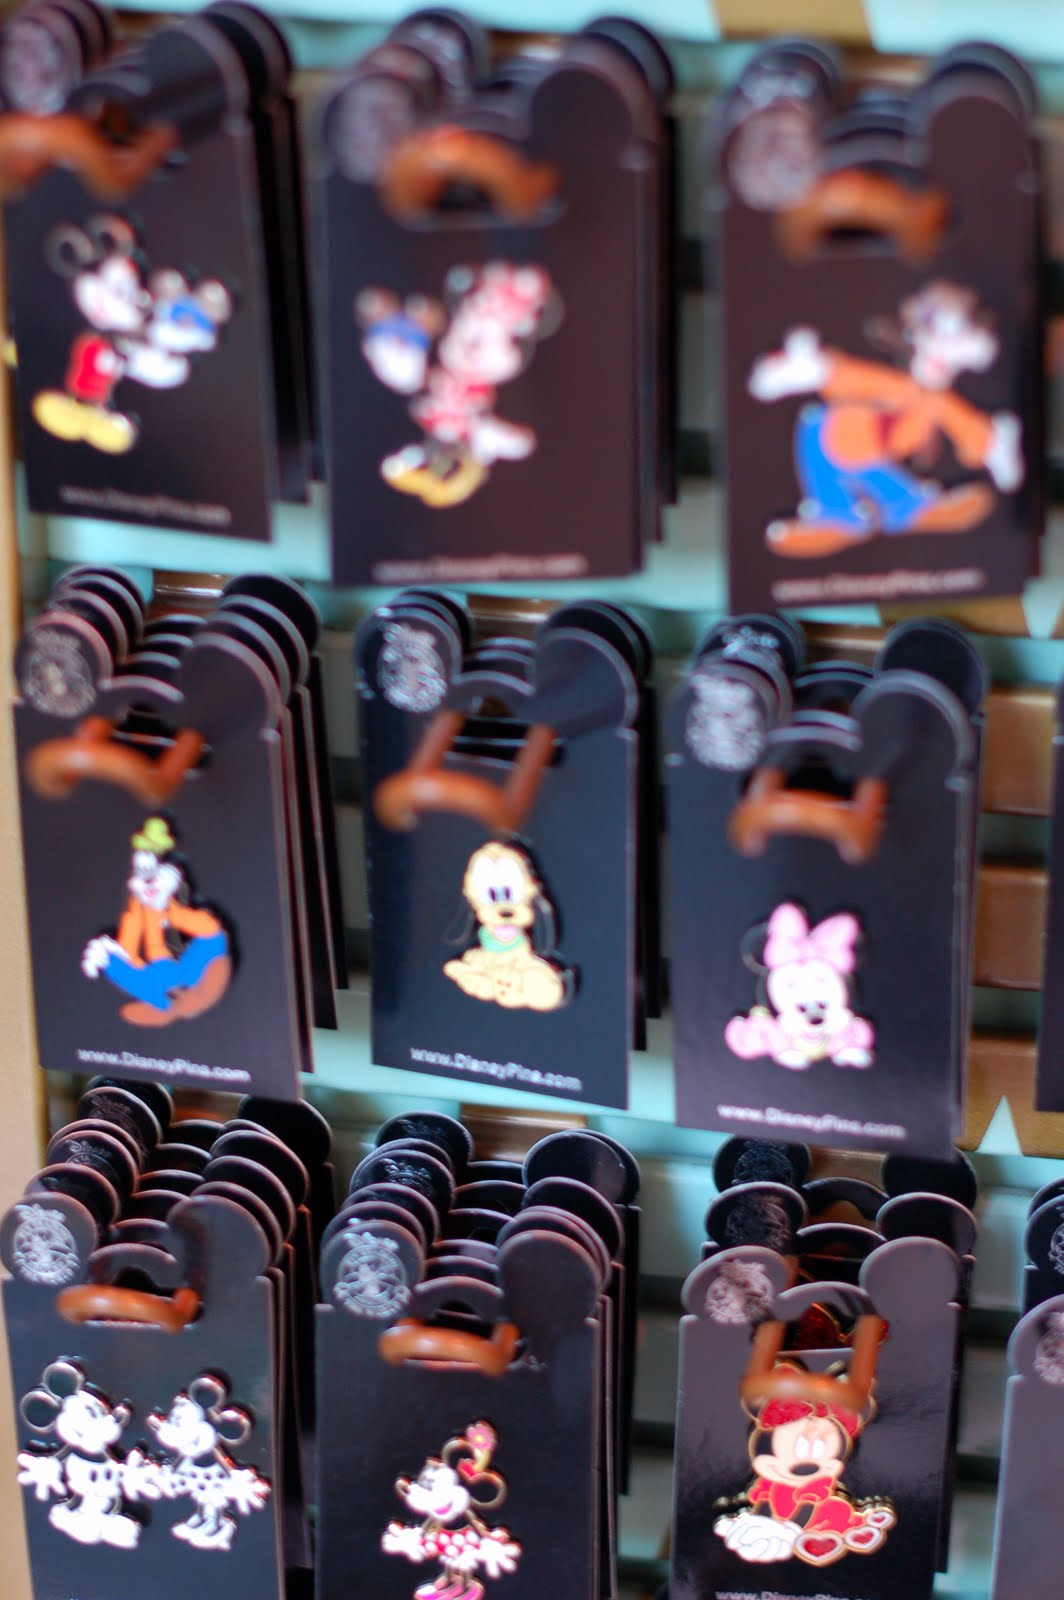 halloween time gifts are offered in disneyland resort shops gifts include jack o lantern mouse ears and collectable pins depicting mickey mouse and his